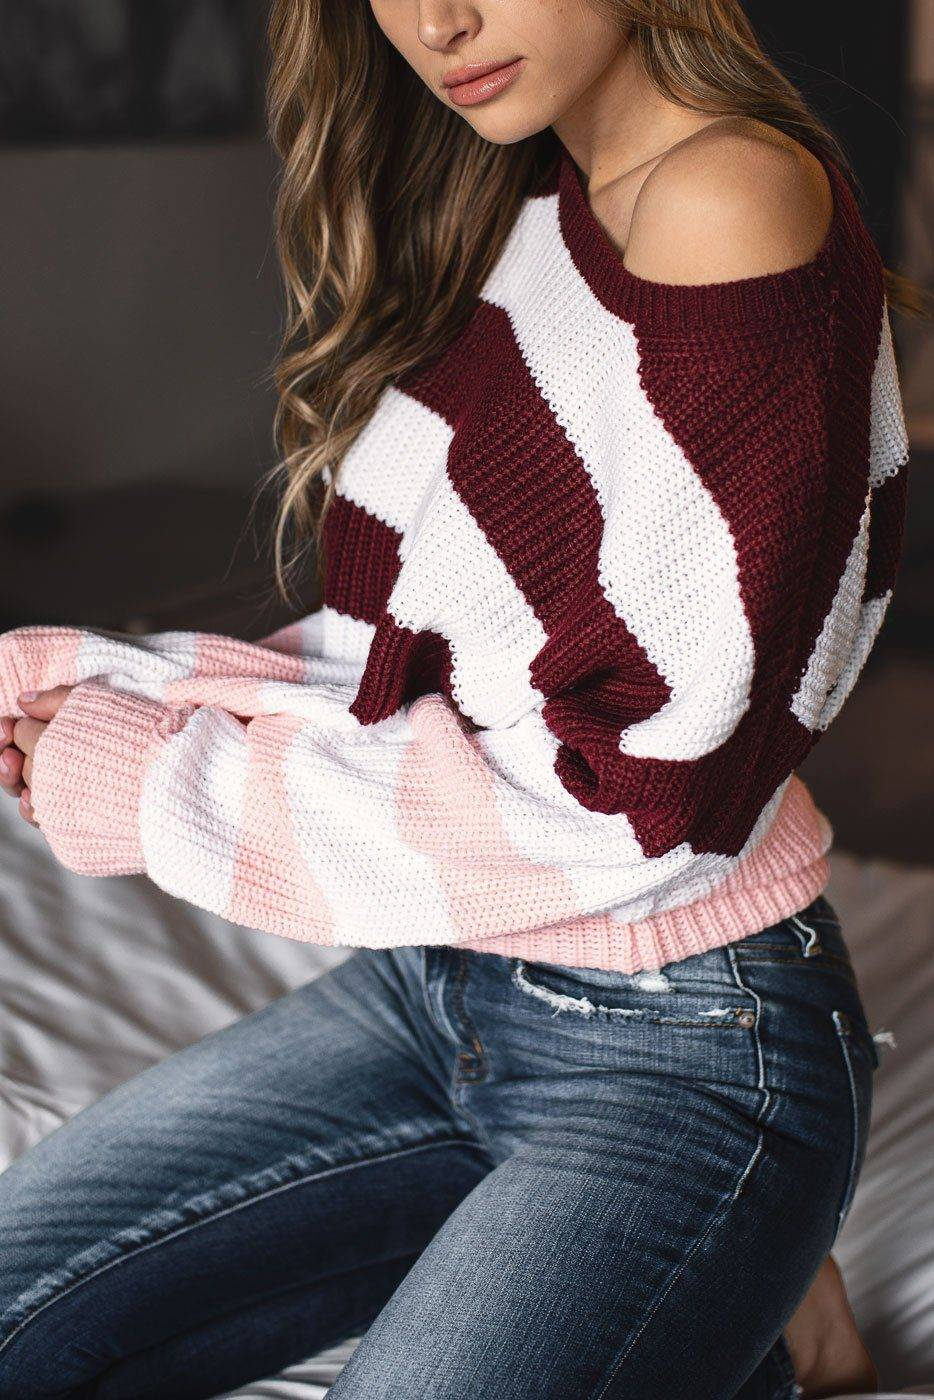 Lily Clothing Lola Burgundy and Pink Striped Sweater  - G1493 Pink Small